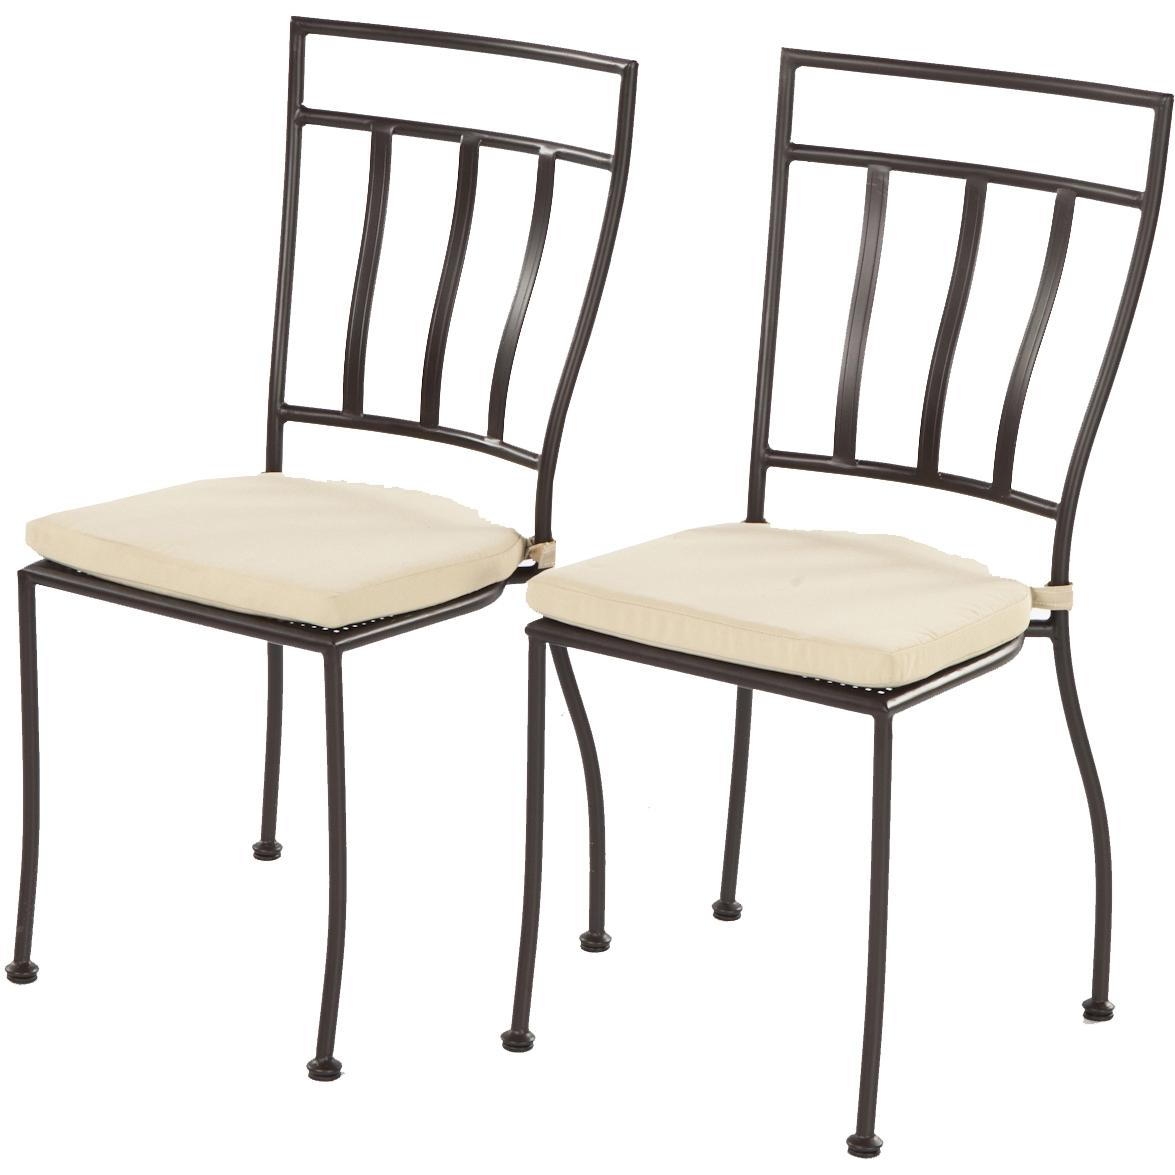 Picture of Alfresco Home Semplice Bistro Chairs With Cushions - Set Of 2